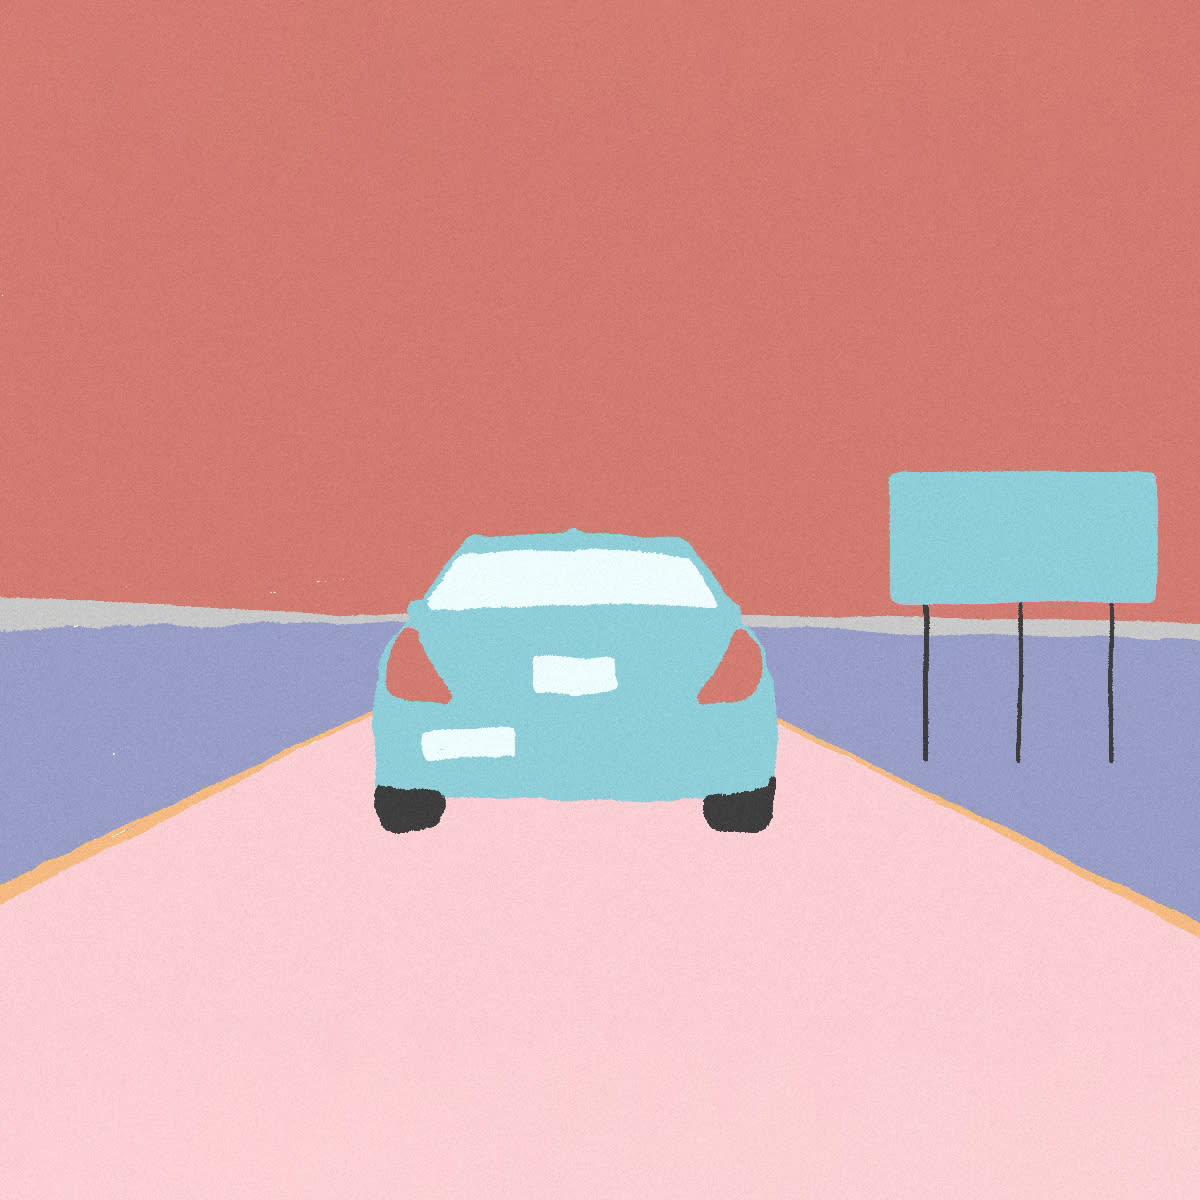 A pastel color image of a car on a pink road with a blue billboard on the left and rose colored sky.